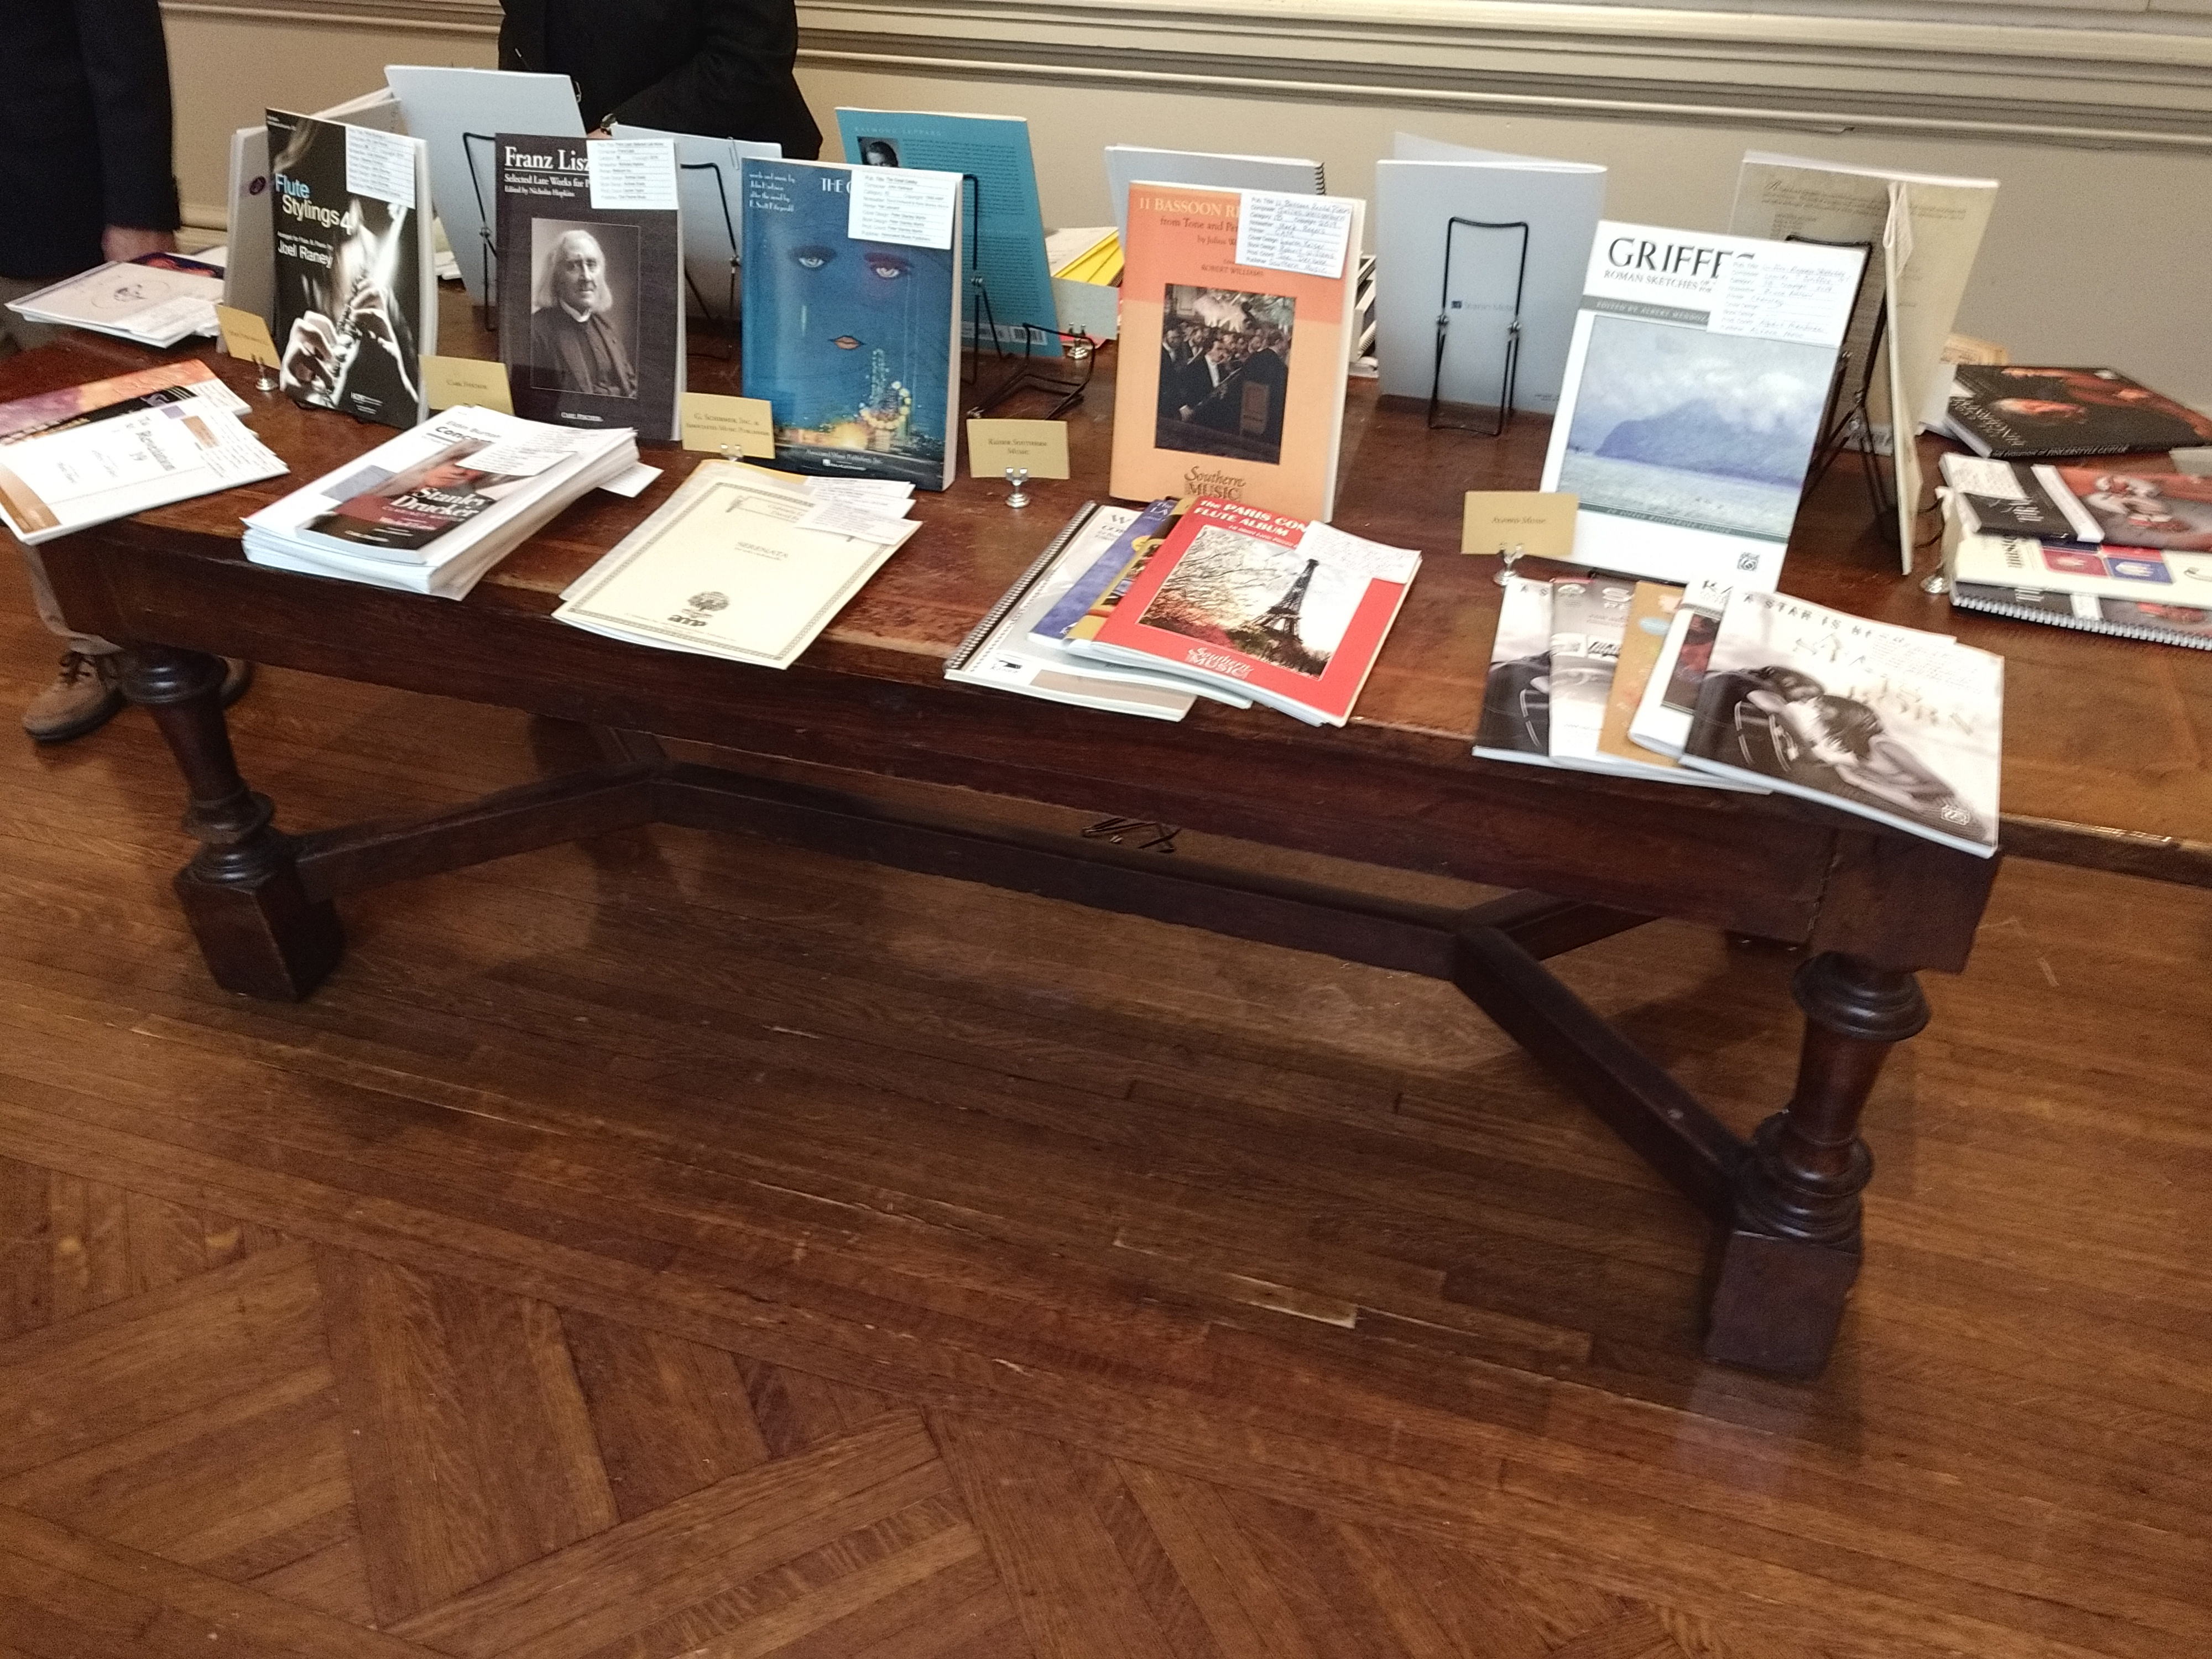 Some of the 2019 Paul Revere award winning sheet music publications on display on a table in the back of the room during the 2019 Music Publishers Association's annual membership meeting.